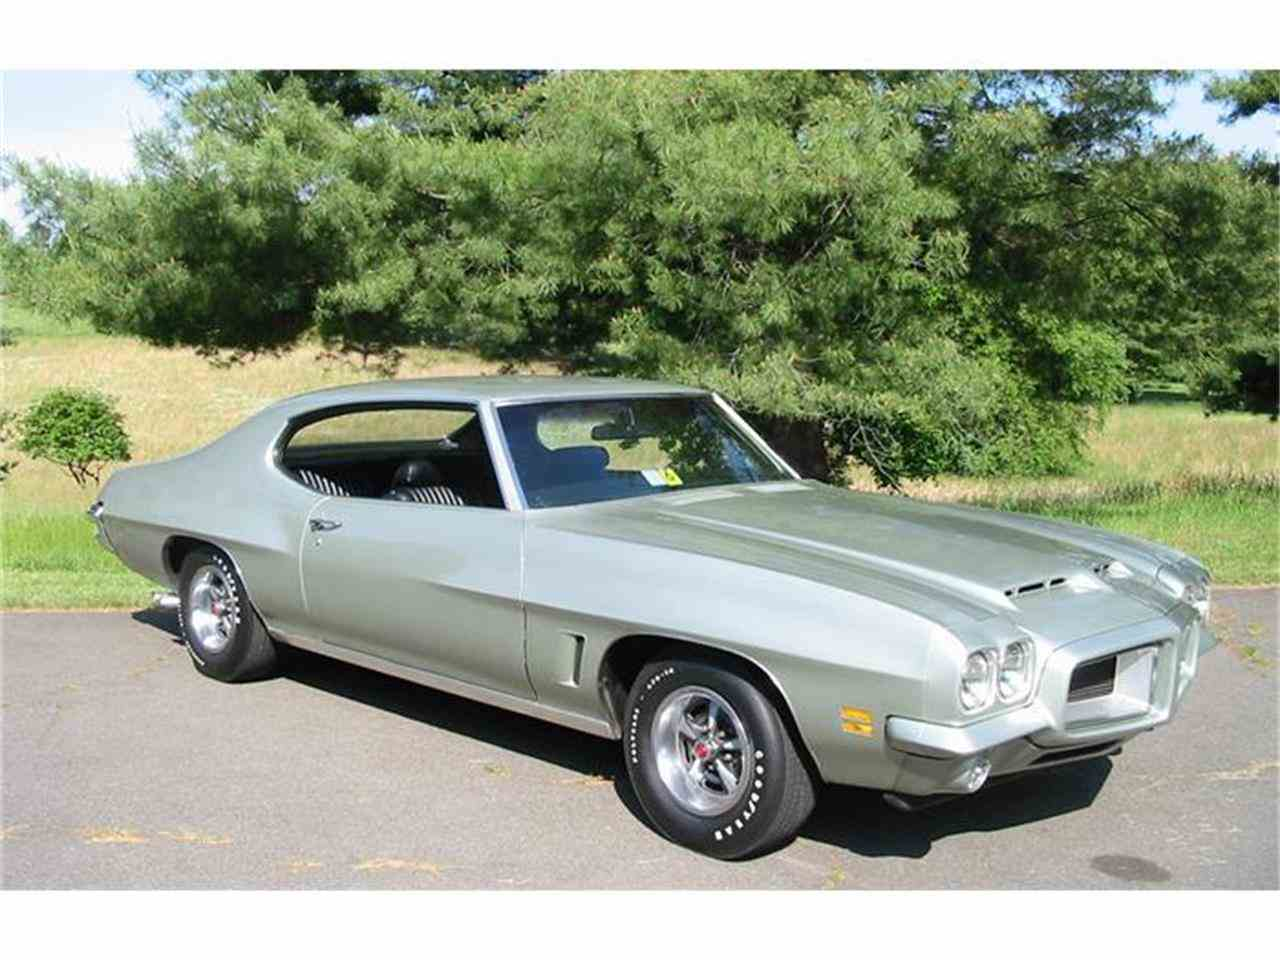 Cars For Sale In Wv: 1972 Pontiac GTO For Sale